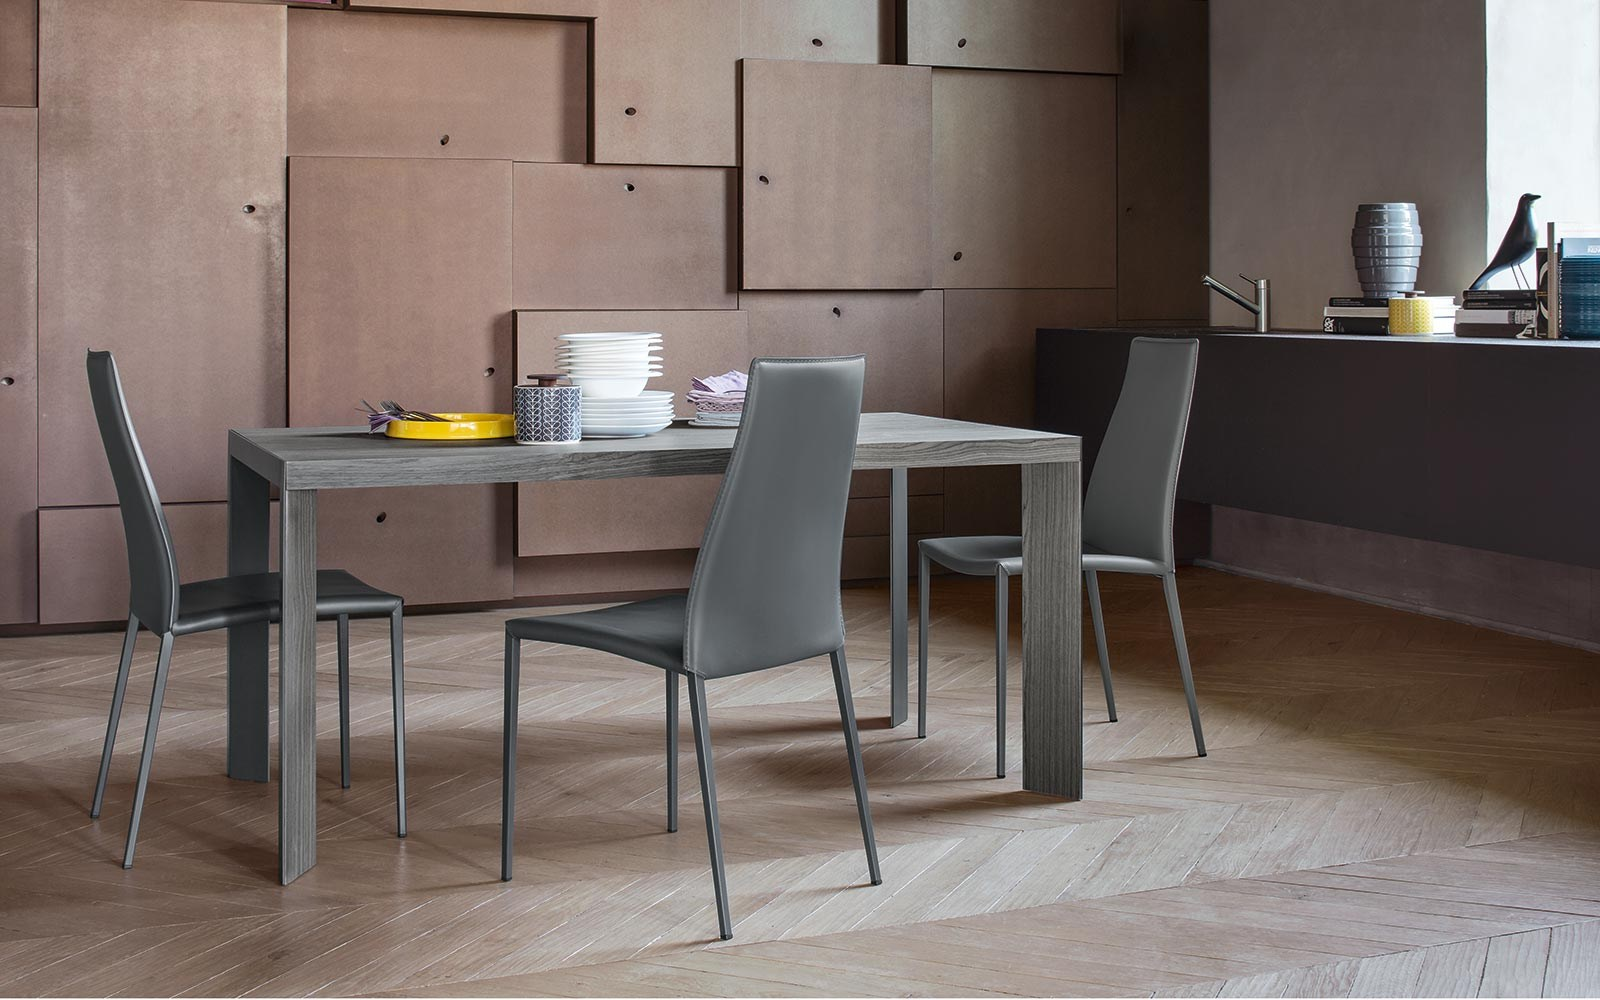 Aida sedia in cuoio rigenerato by calligaris design studio 28 for Calligaris sedie